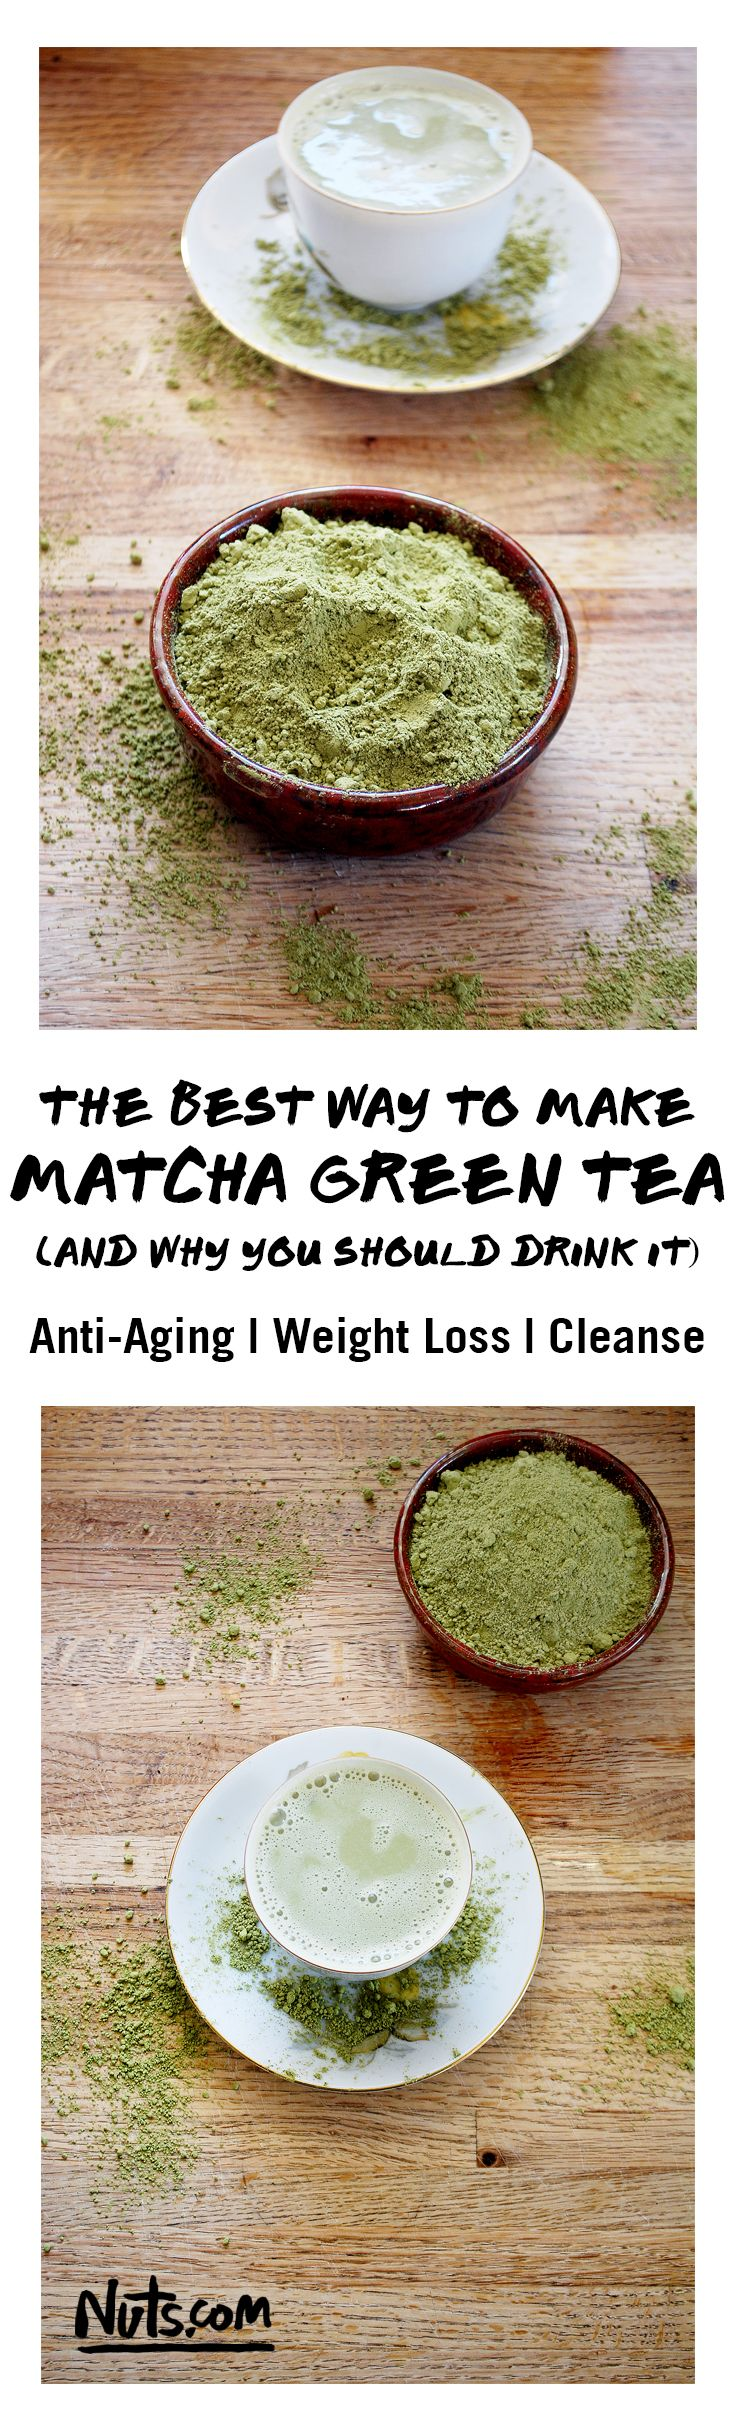 The Best Way to Make Matcha Green Tea | A traditional tea hailing from Japan, Matcha Green Tea is loaded with health benefits including weight loss and anti-aging properties. It also helps boost your metabolism and immune system so you can feel energized for your day without any crash later. You can also cook with Matcha making a ton of recipes like green tea pancakes, matcha lattes, ice cream and even cookies! Find out why you should be drinking this amazing super tea at Nuts.com!